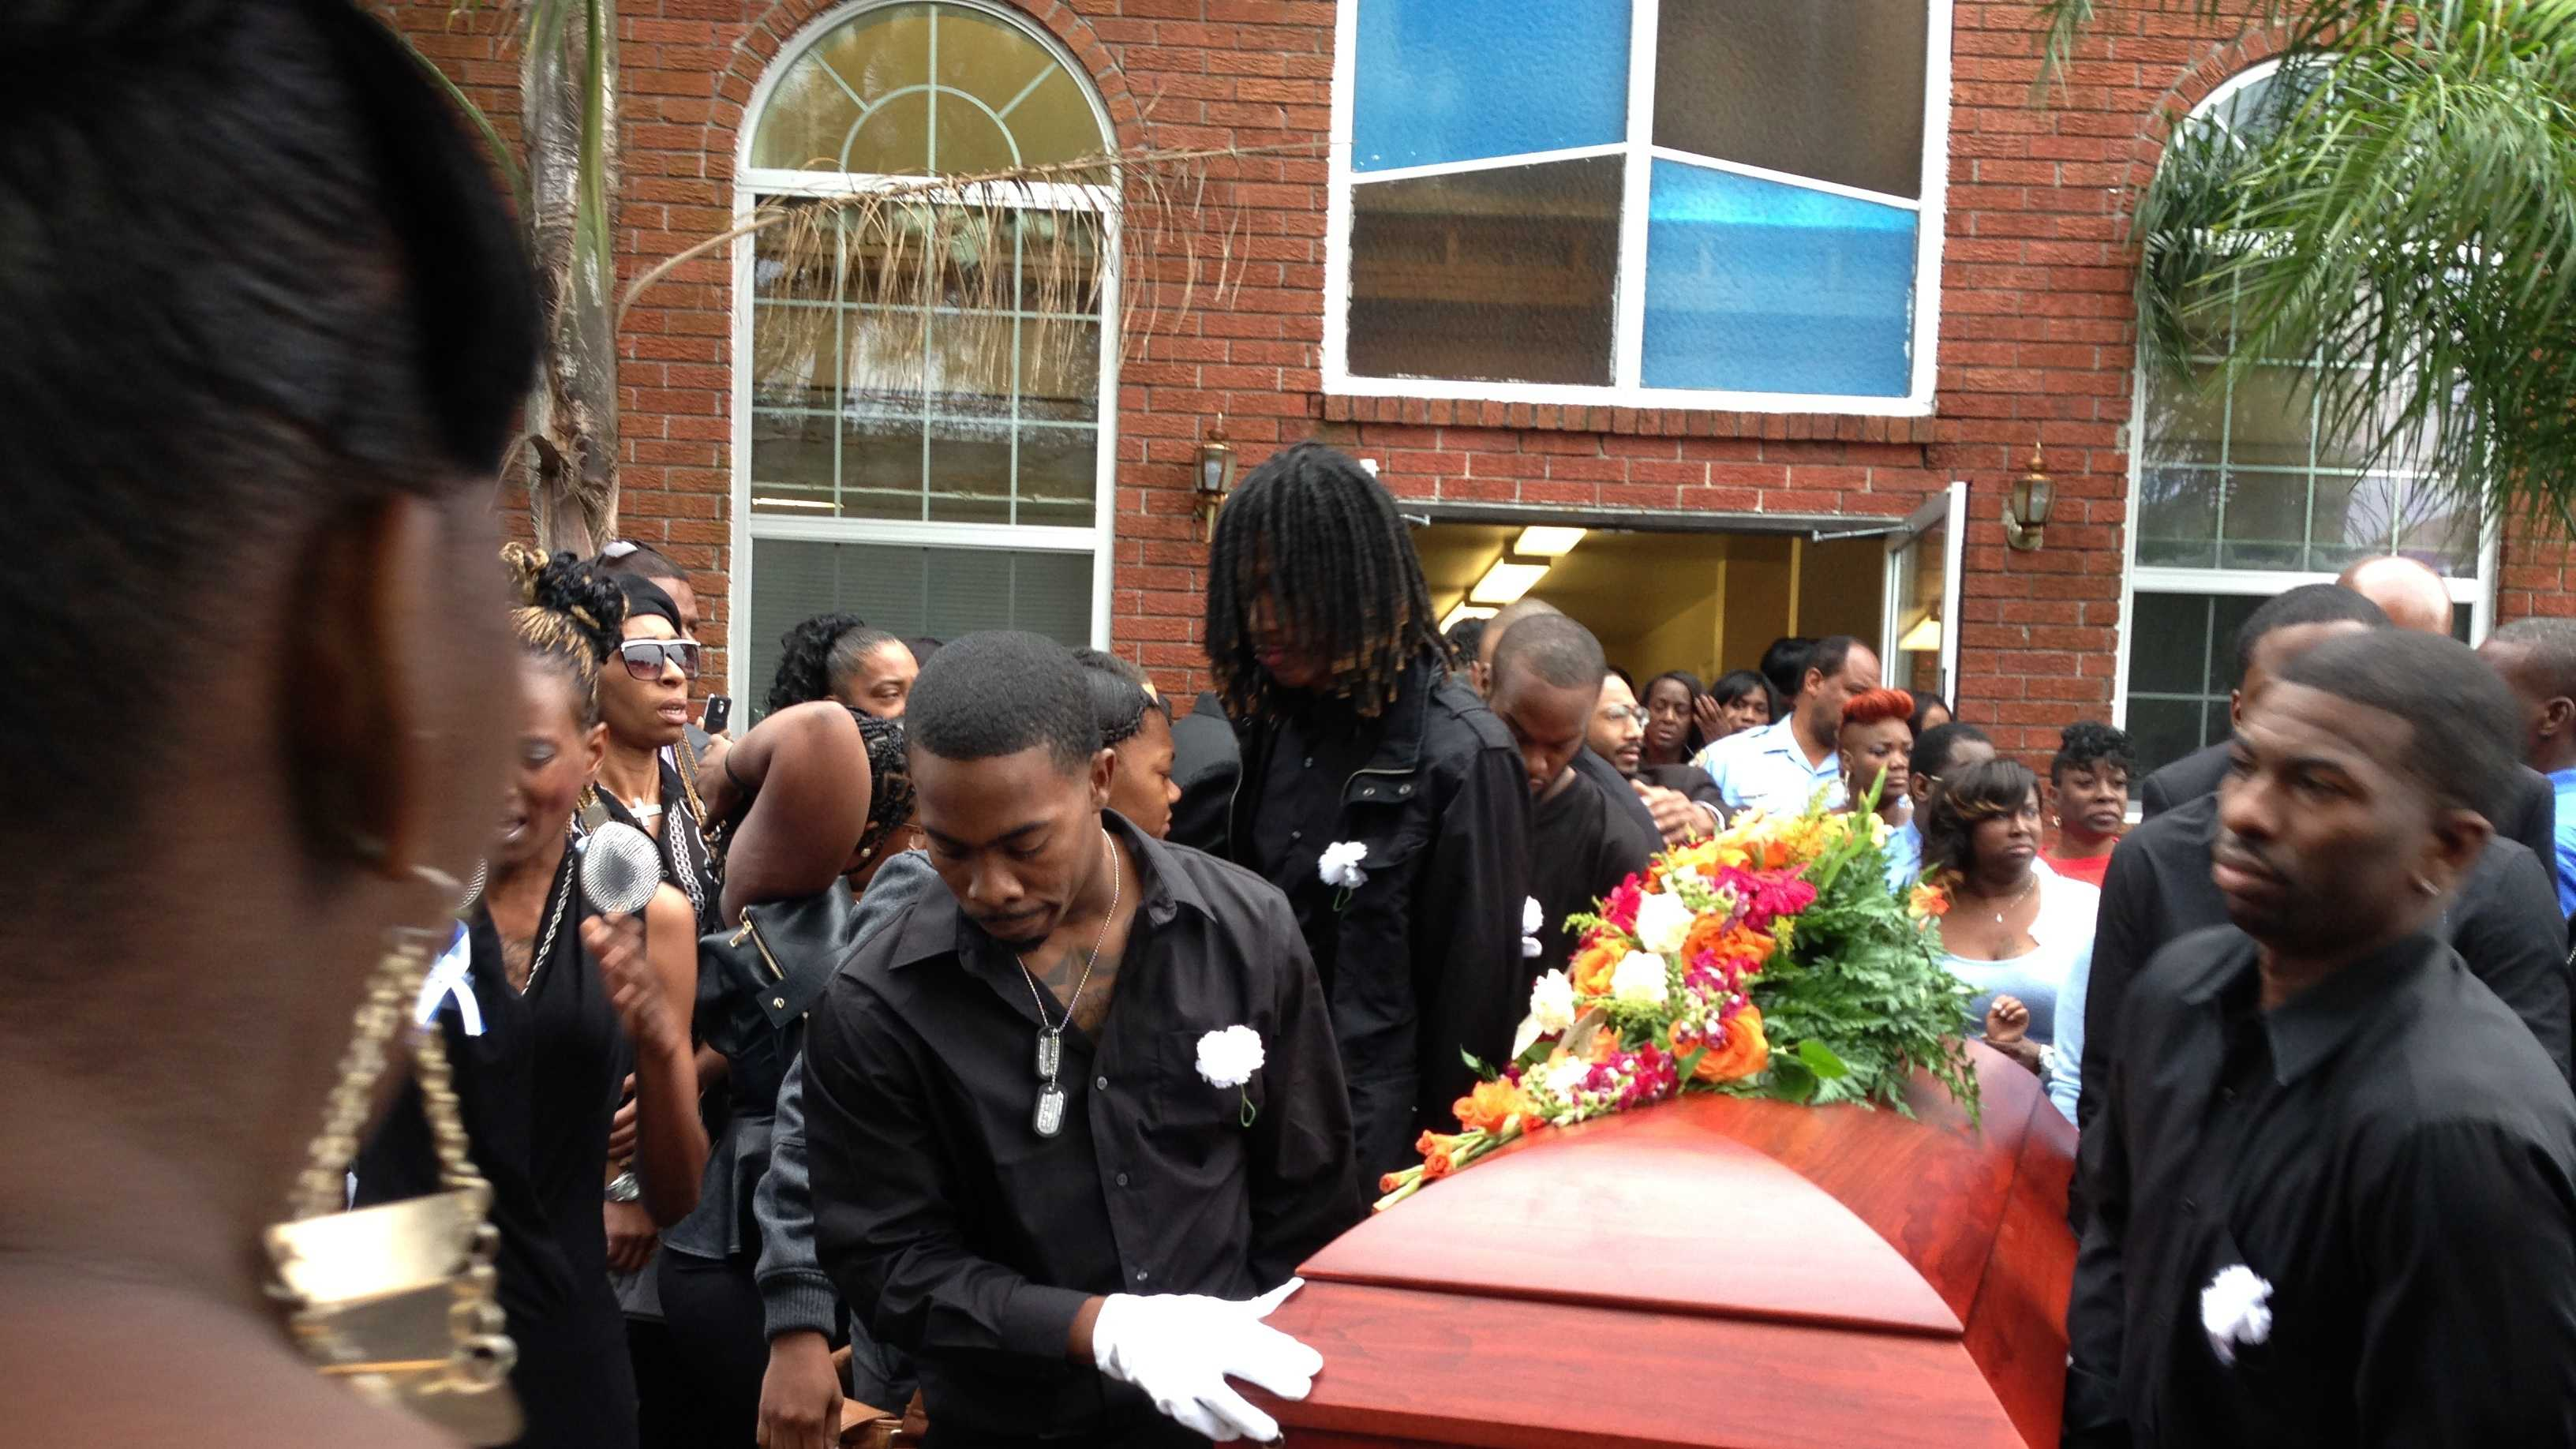 Street violence claimed their lives. A father and his infant son were laid to rest Saturday but not before many people packed inside a church to say their final goodbyes.